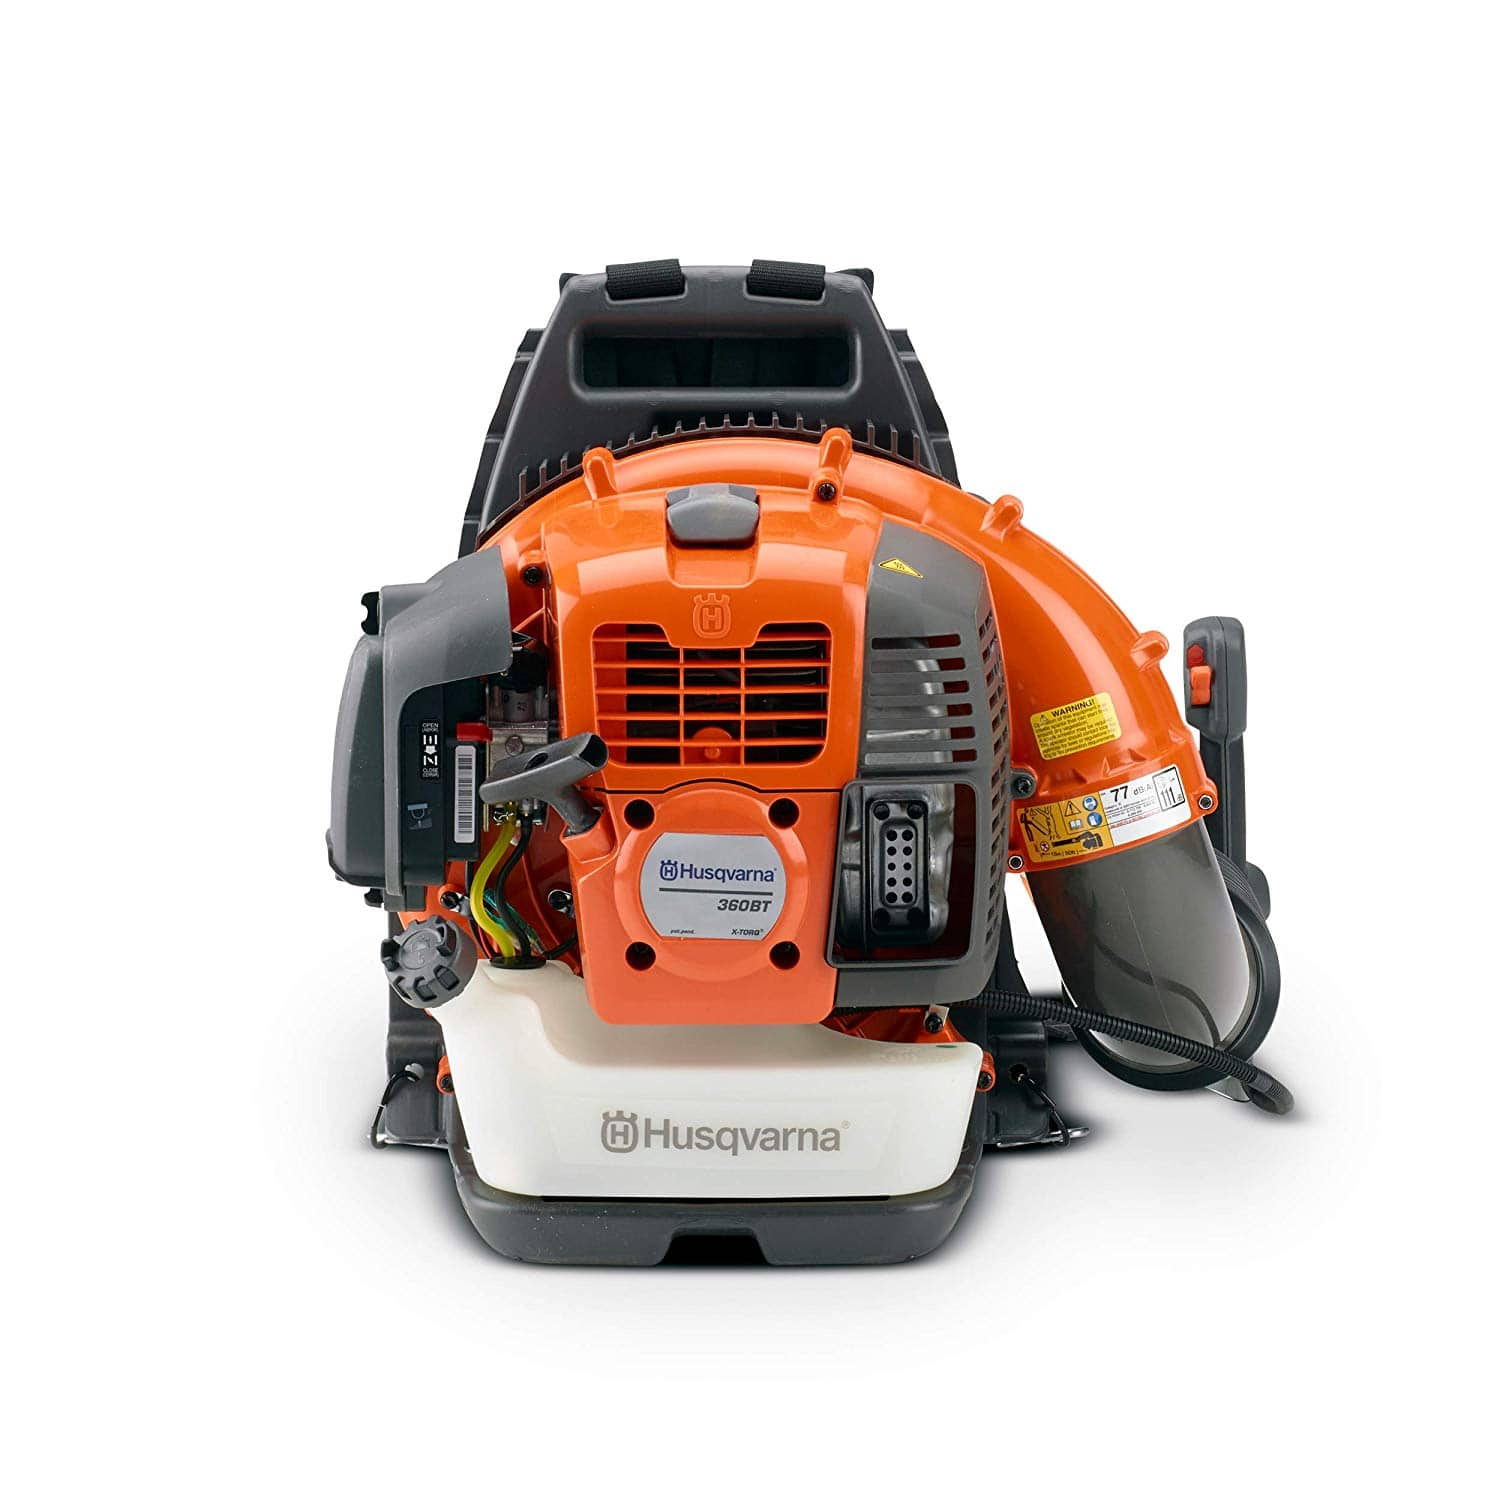 Husqvarna 360BT backpack blower 20-40% off Lowes where in stock YMMV $263